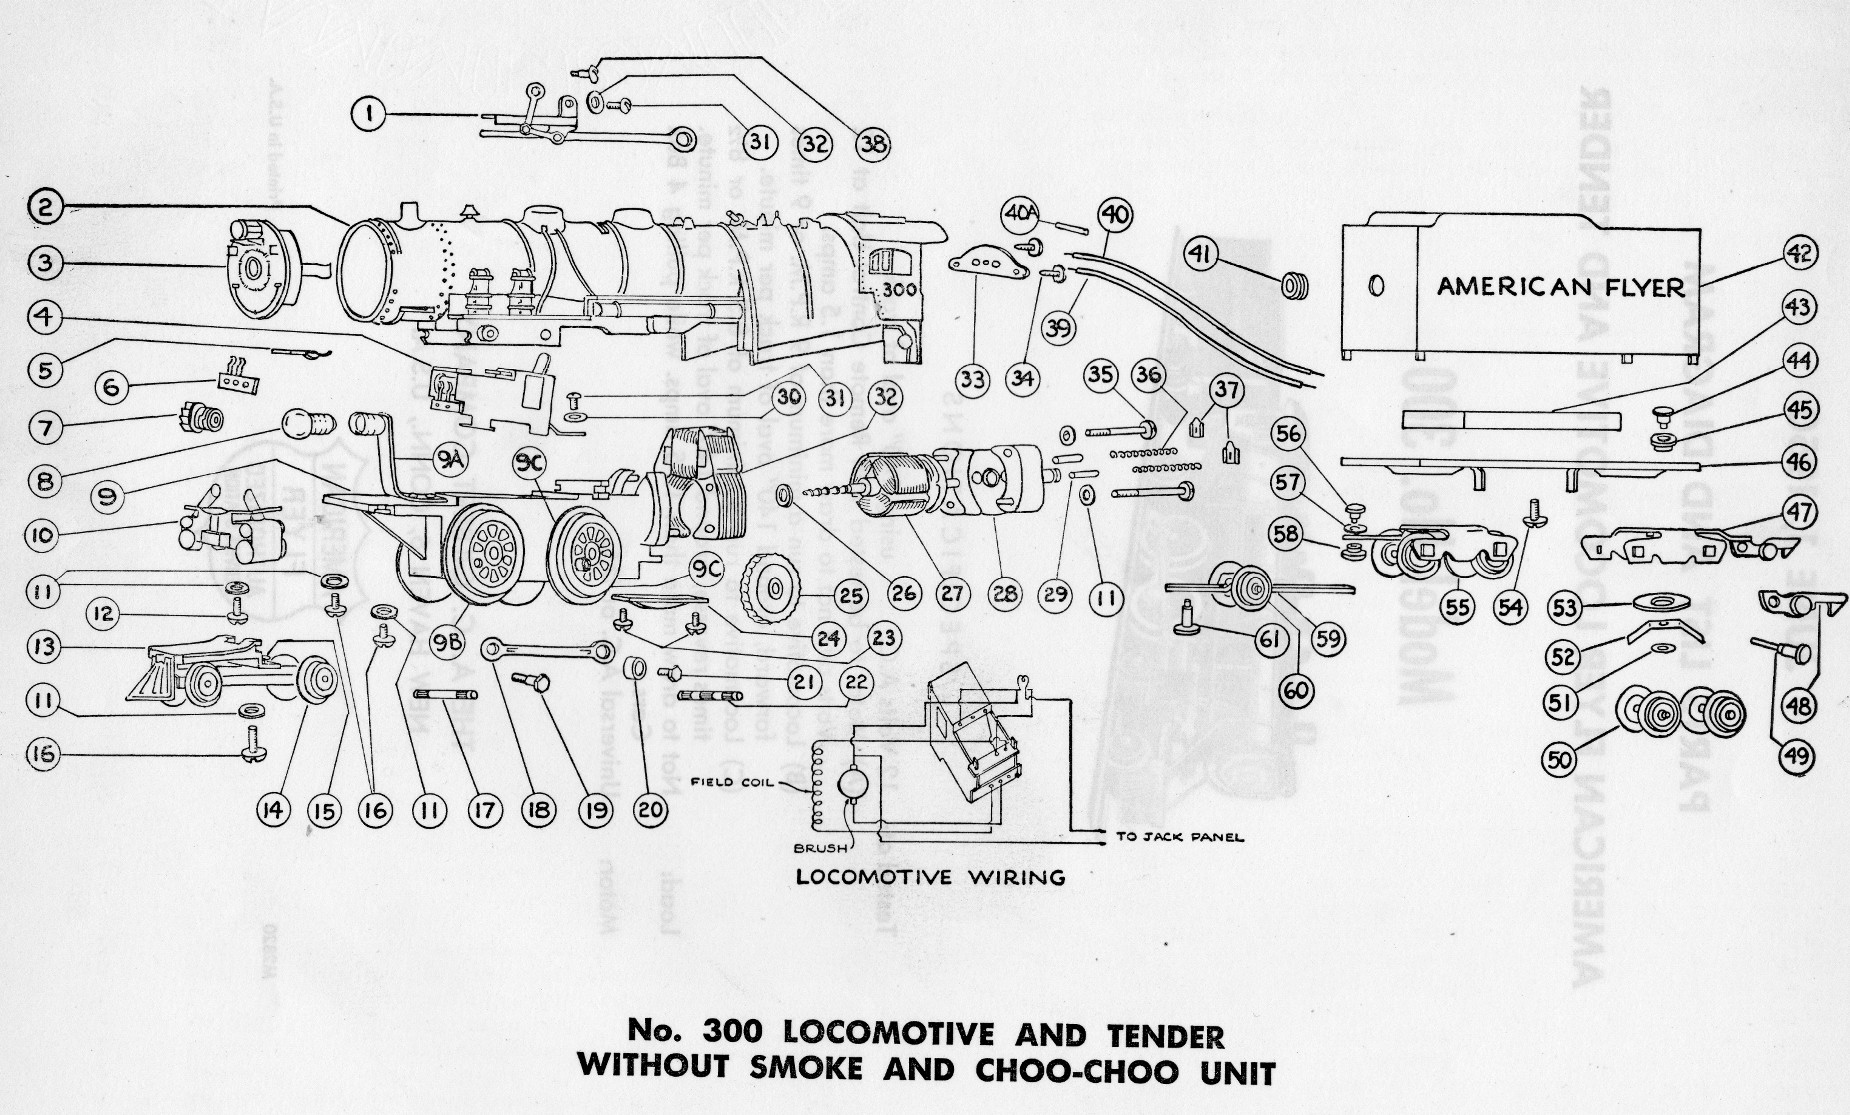 Parts Of A Steam Locomotive